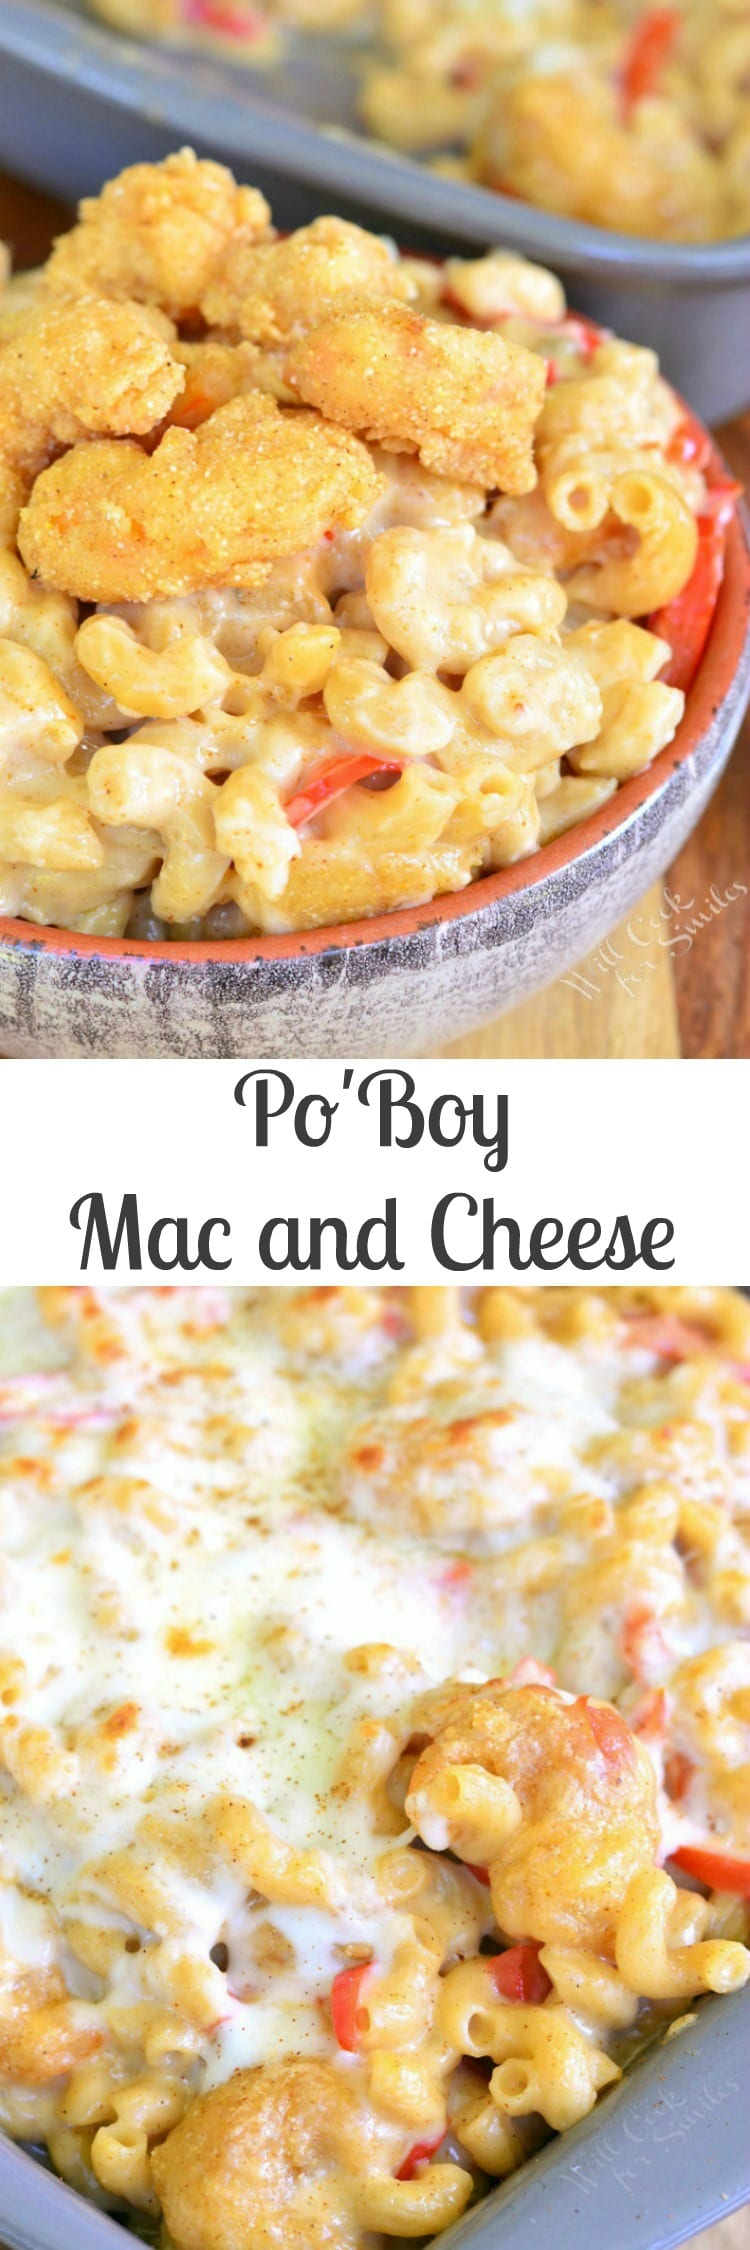 Po'Boy Mac and Cheese. You can't imagine a more comforting dish than this homemade mac and cheese made with bell peppers, homemade fried shrimp and a spice kick.